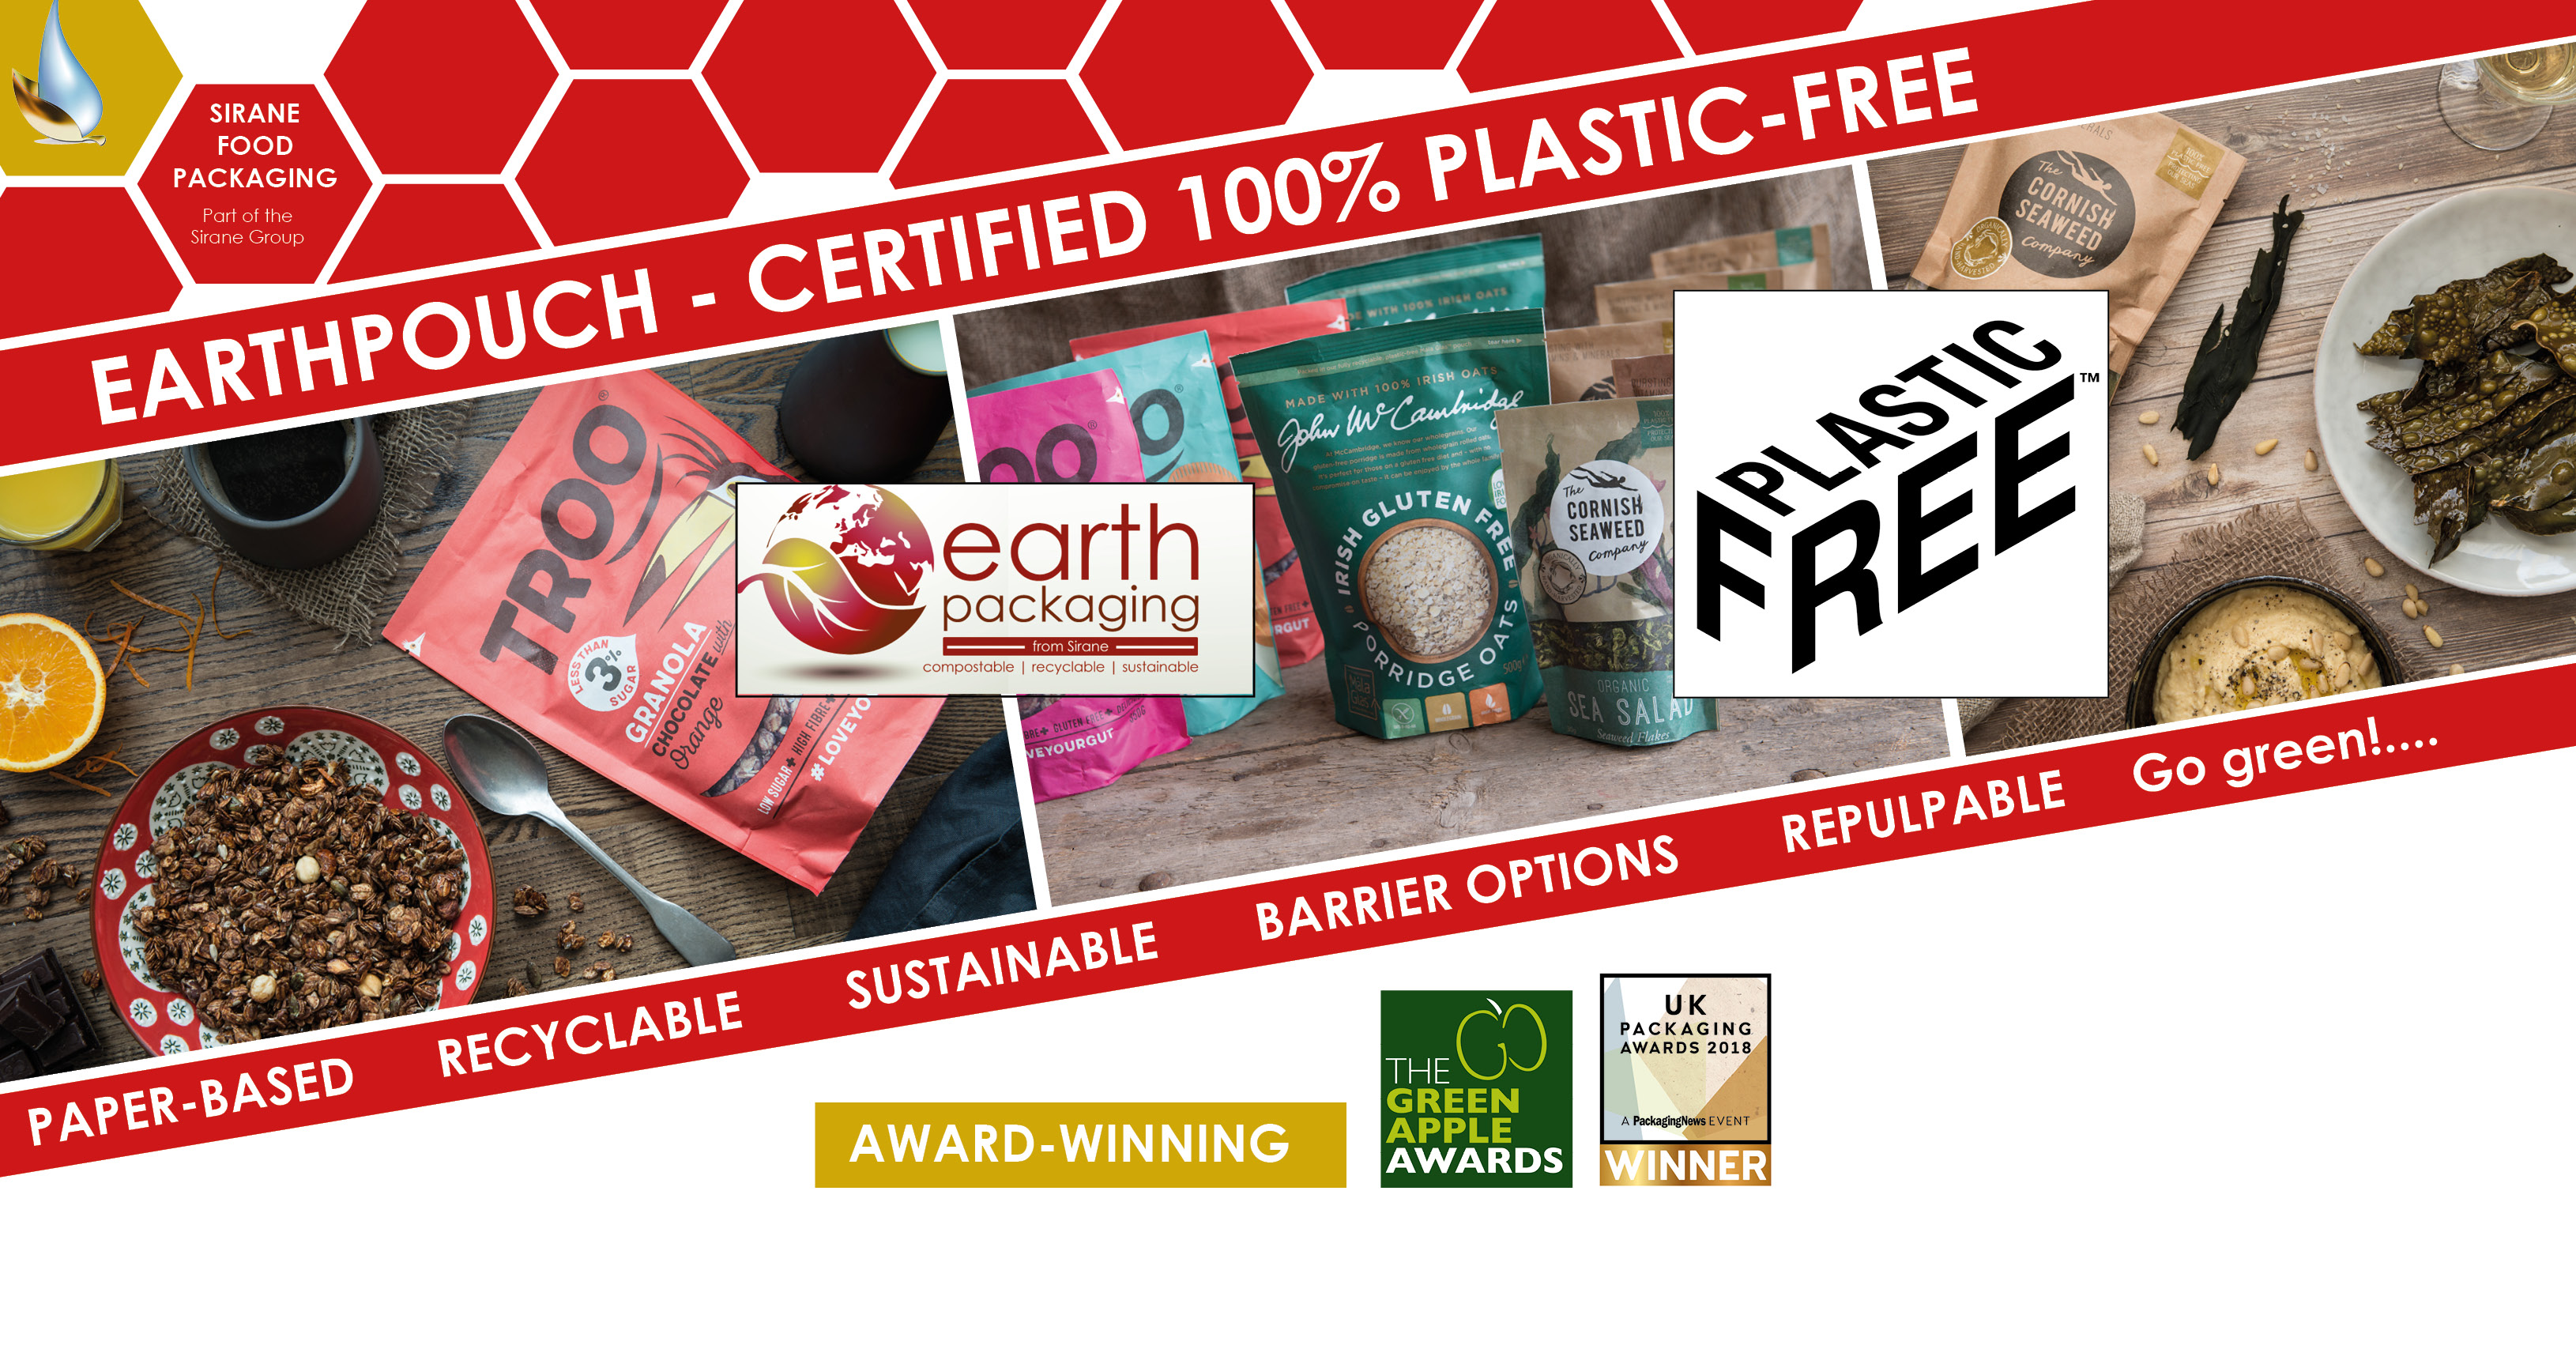 Plastic Free - trust mark from APP